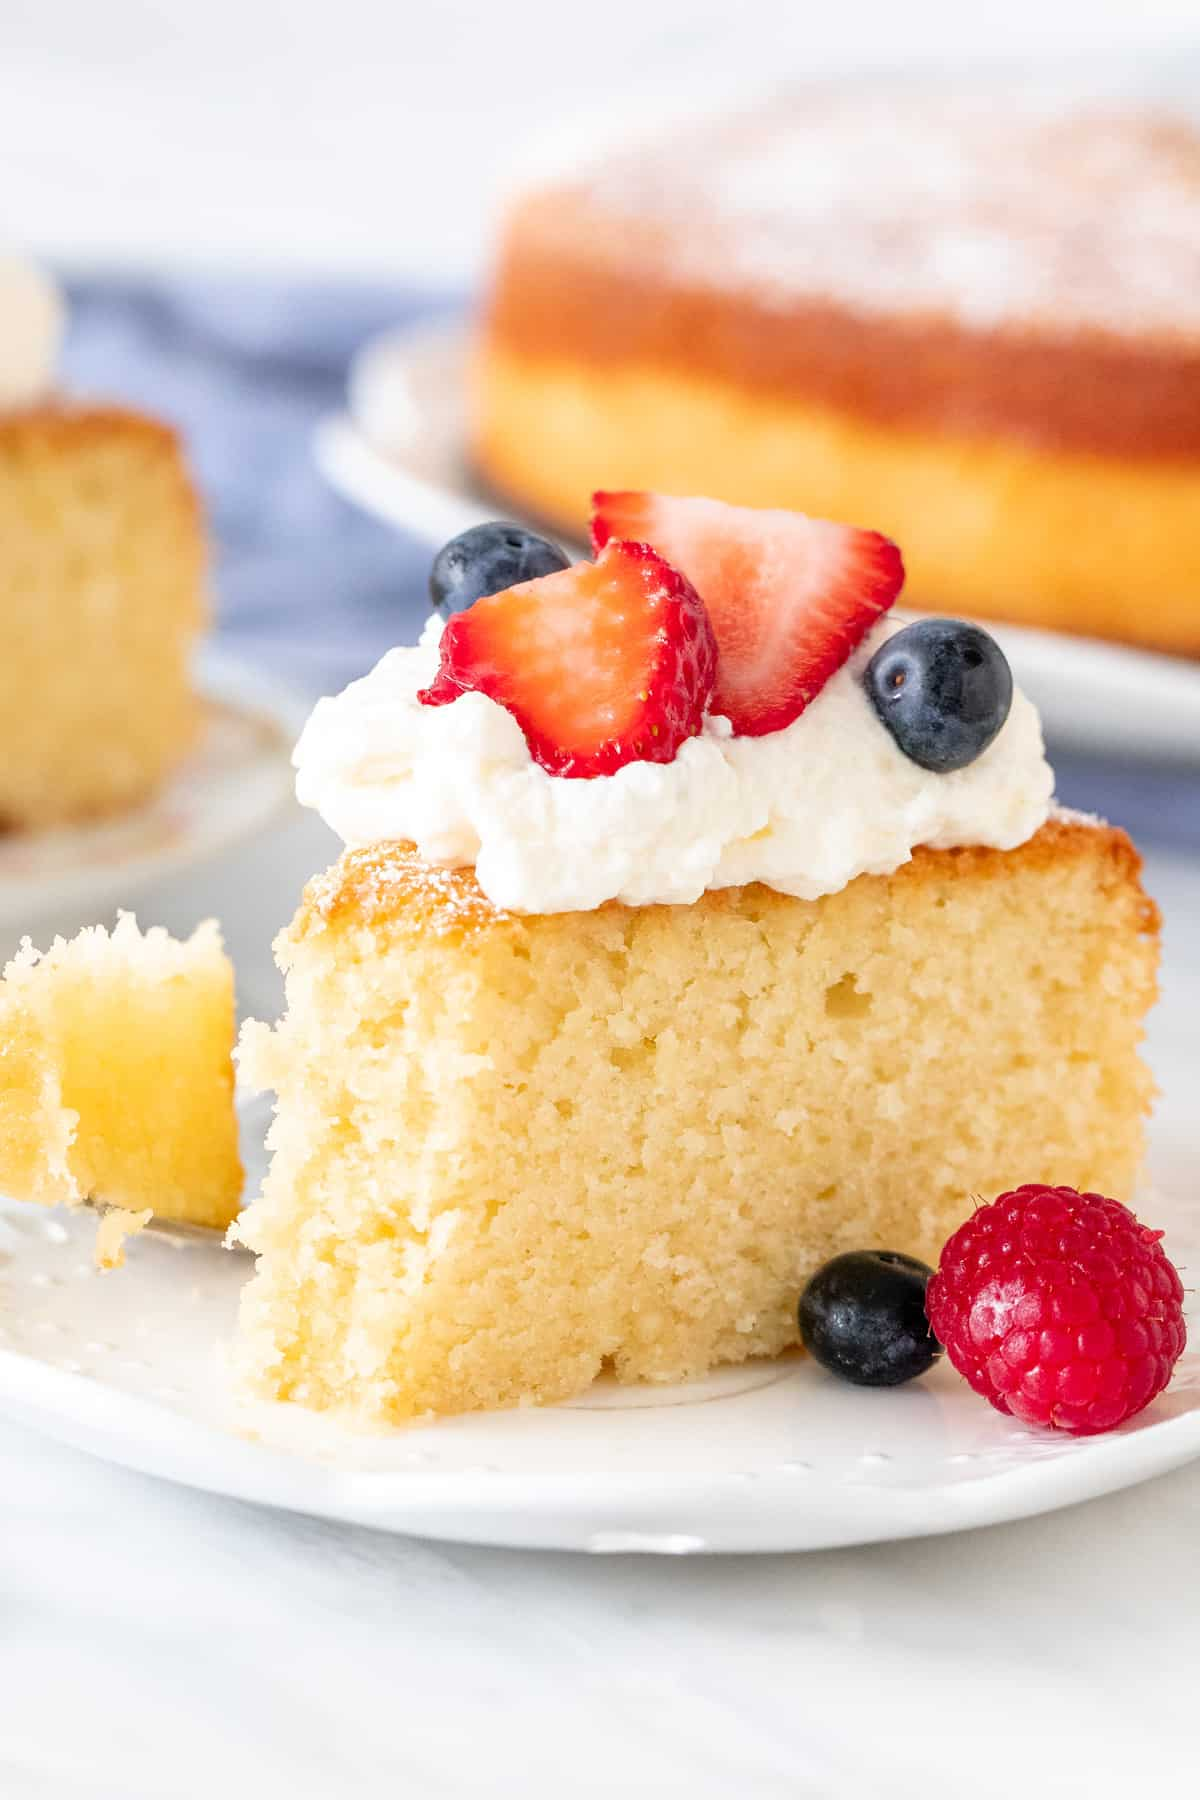 Slice of lemon olive oil cake with whipped cream and berries on top.